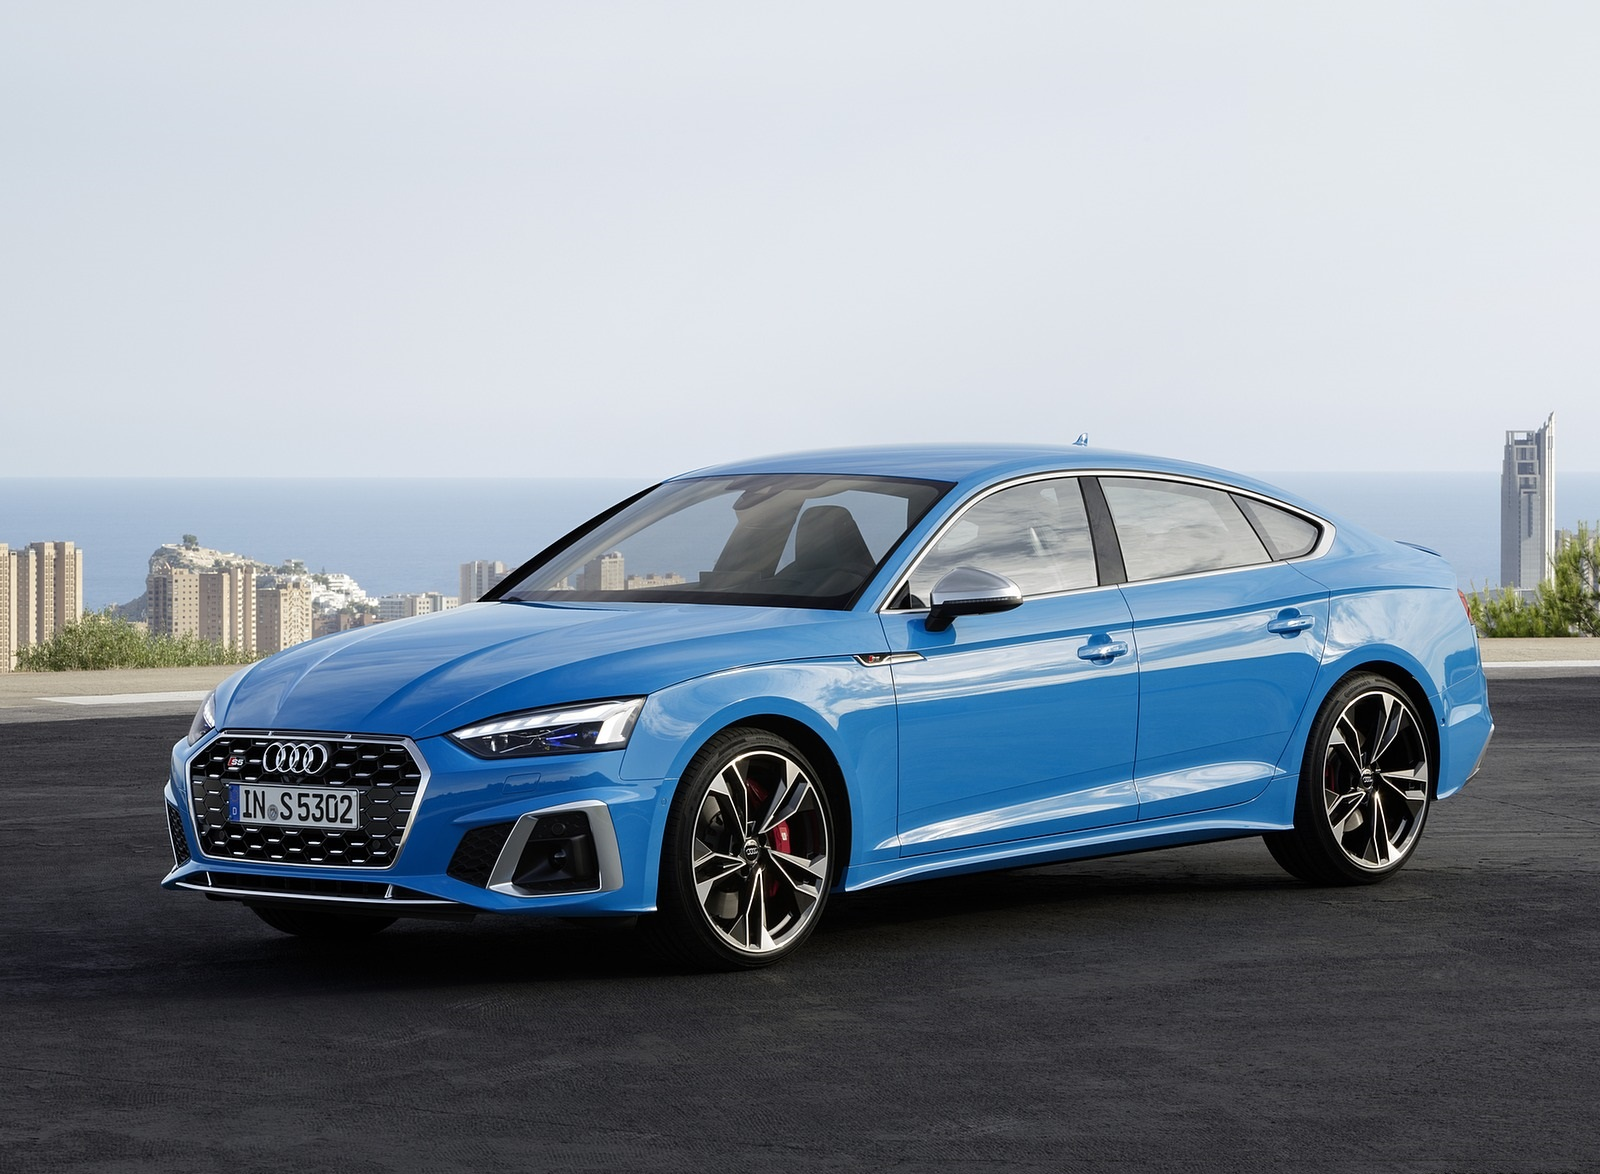 2020 Audi S5 Sportback TDI (Color: Turbo Blue) Front Three-Quarter Wallpapers (7)